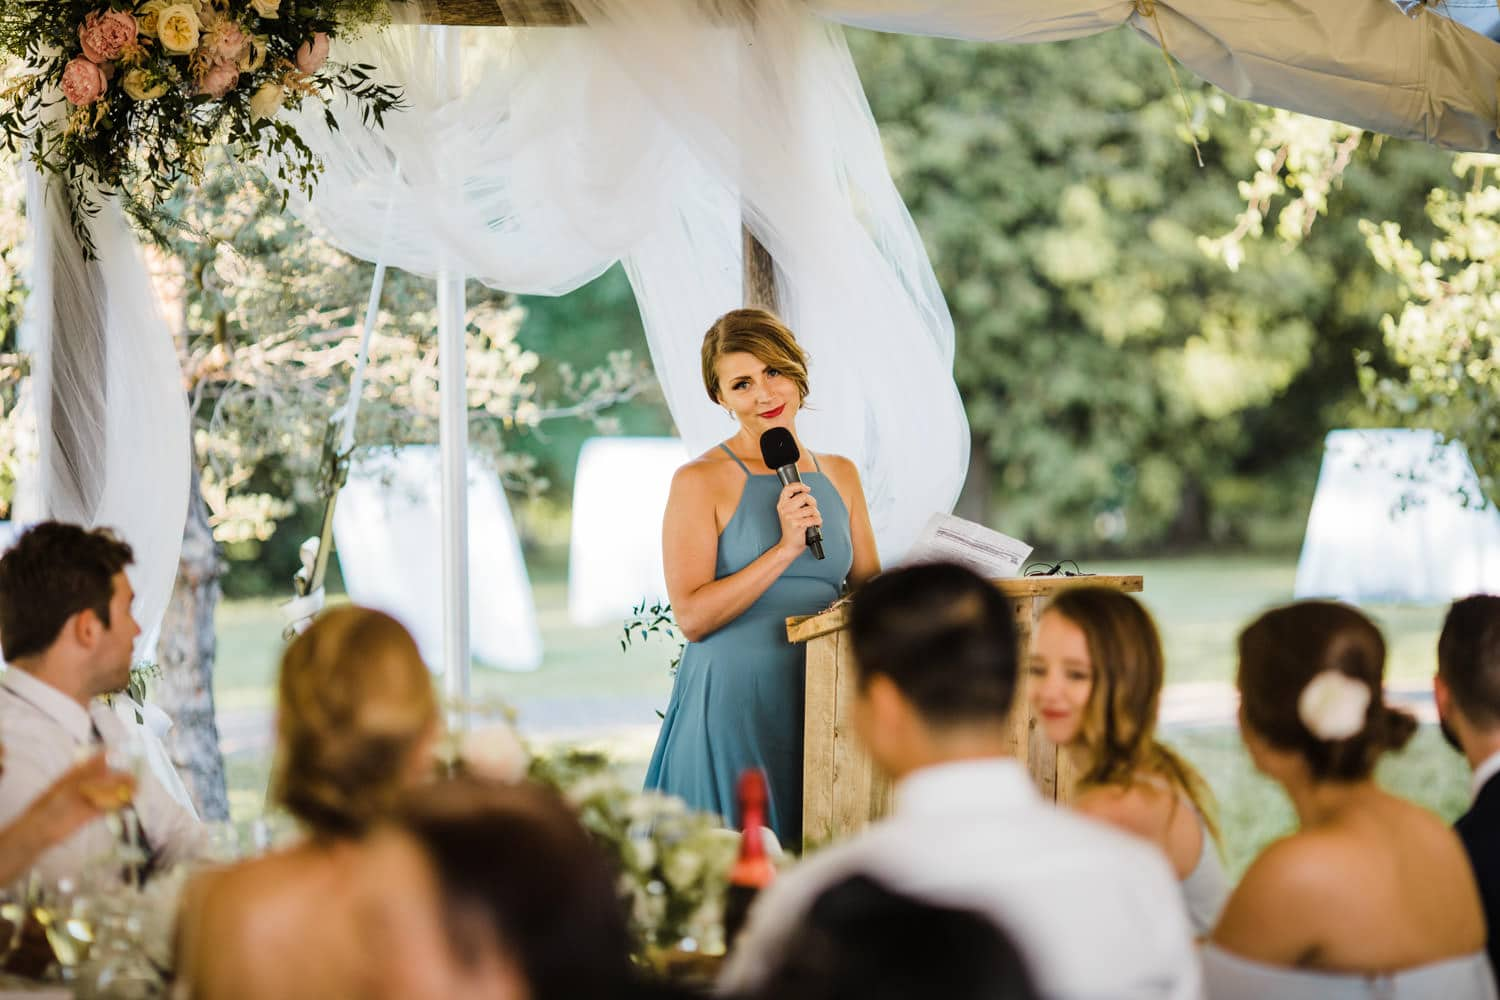 bridesmaid looks lovingly at bride during speech - ottawa backyard wedding - carley teresa photography